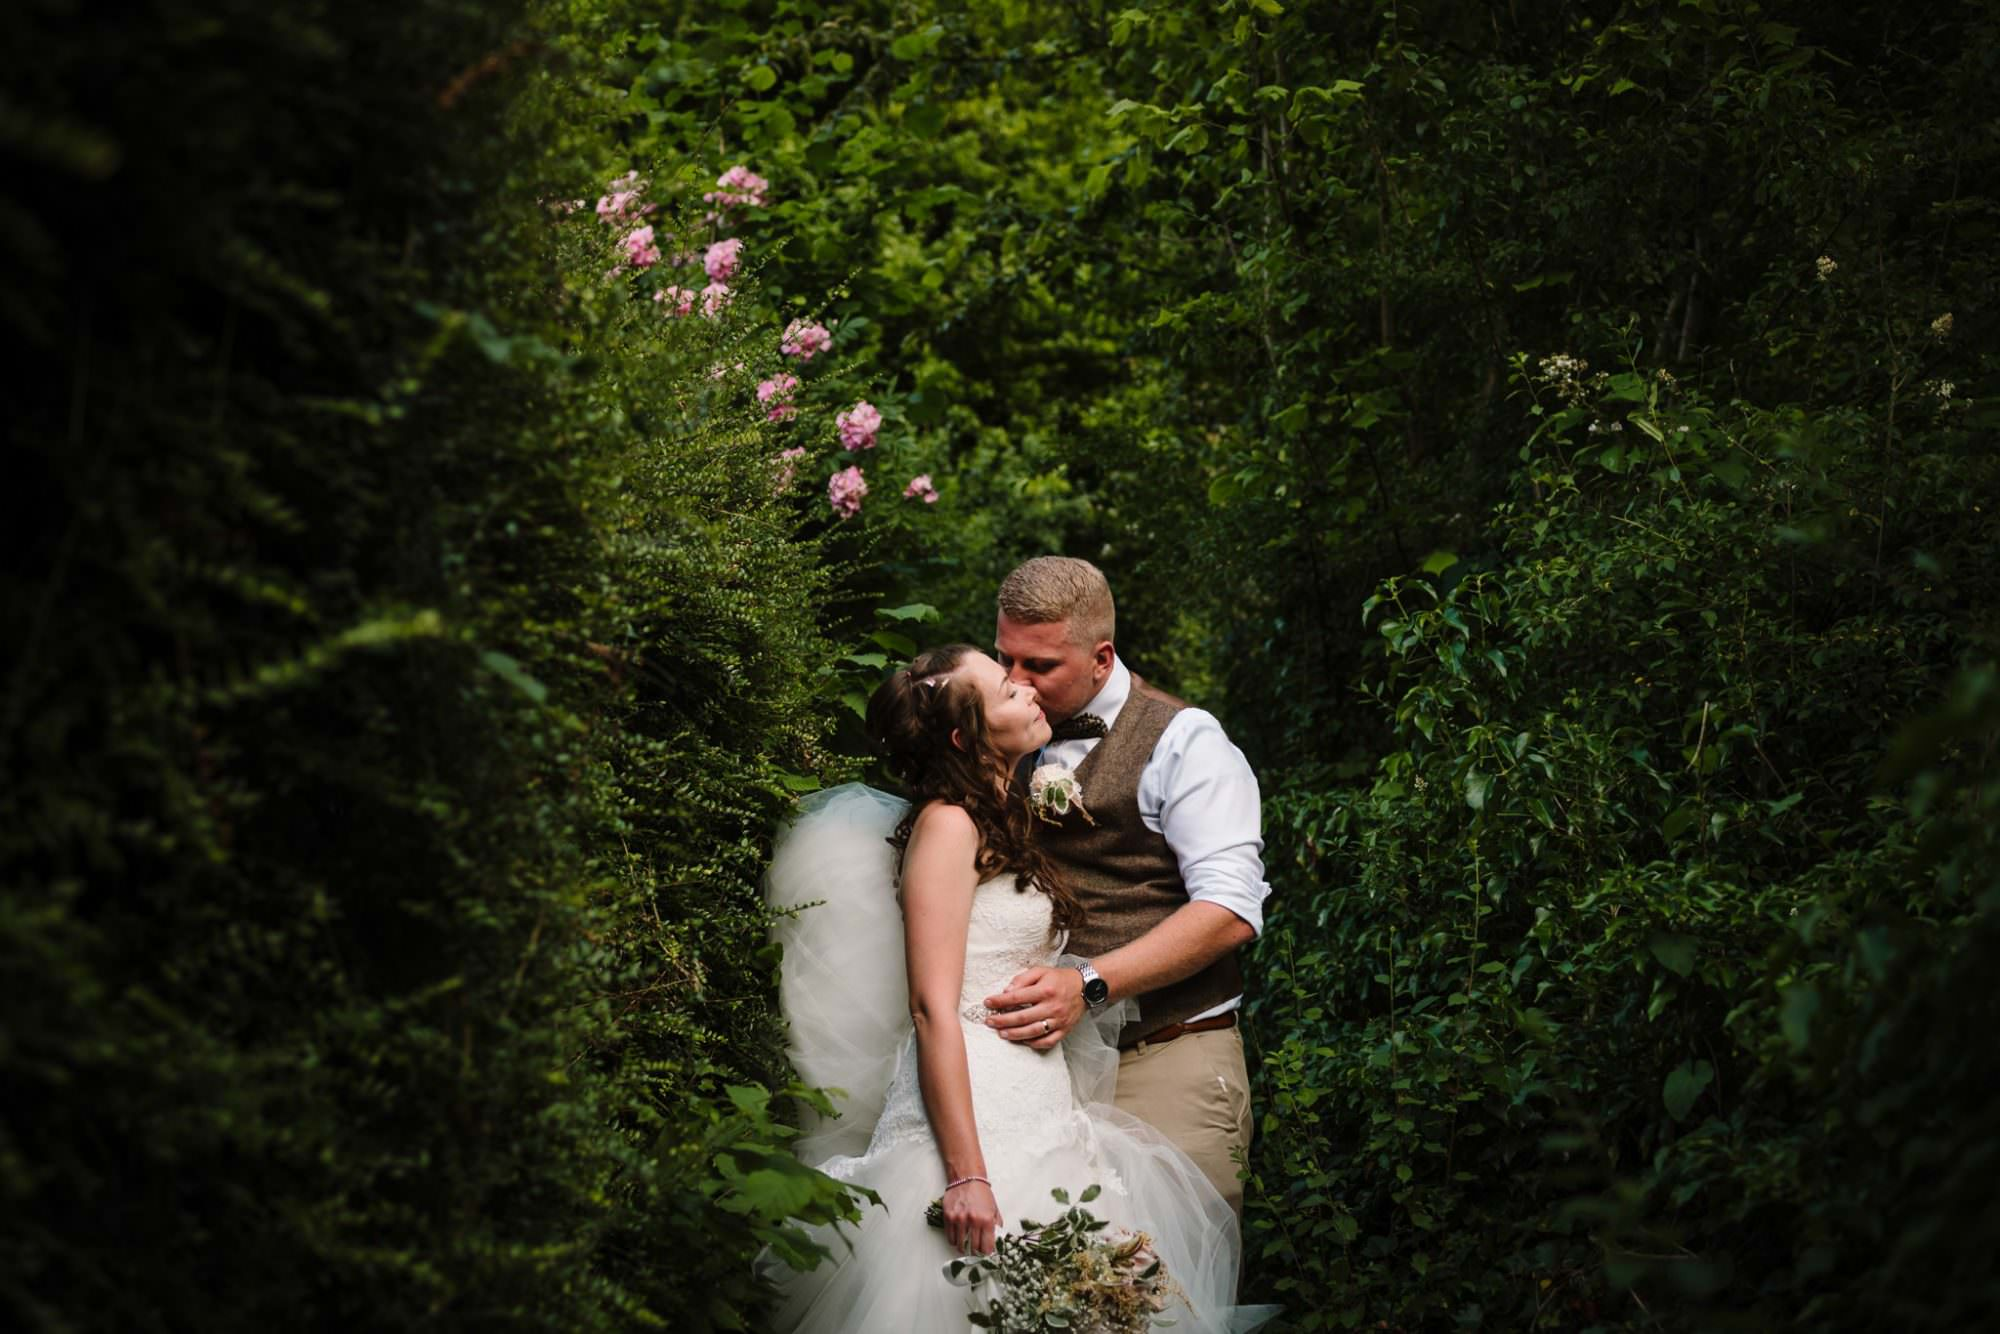 Wedding Photography at Milton Abbas in Dorset